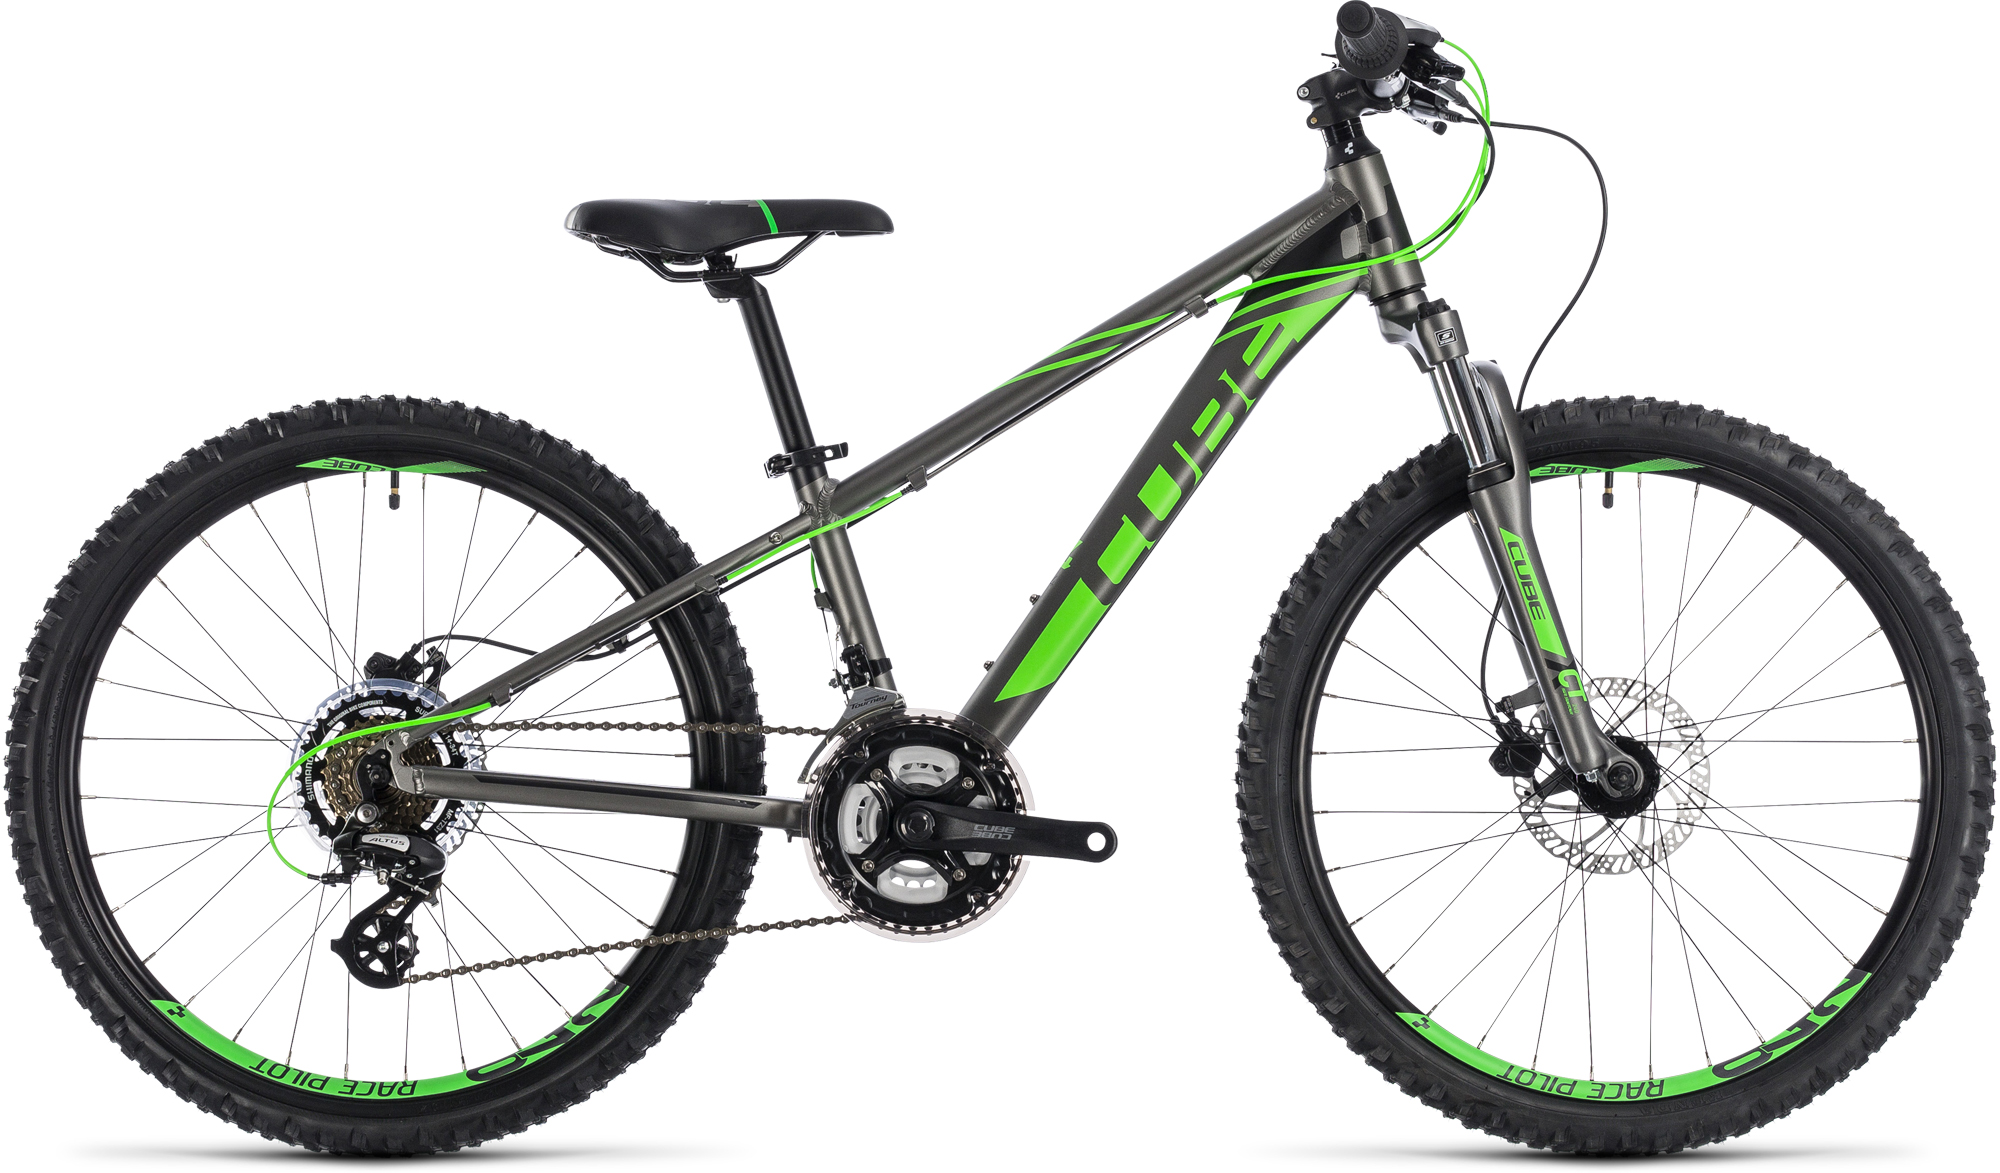 CUBE Велосипед подростковый CUBE KID 240 Disc велосипед specialized roubaix sl4 comp disc 2015